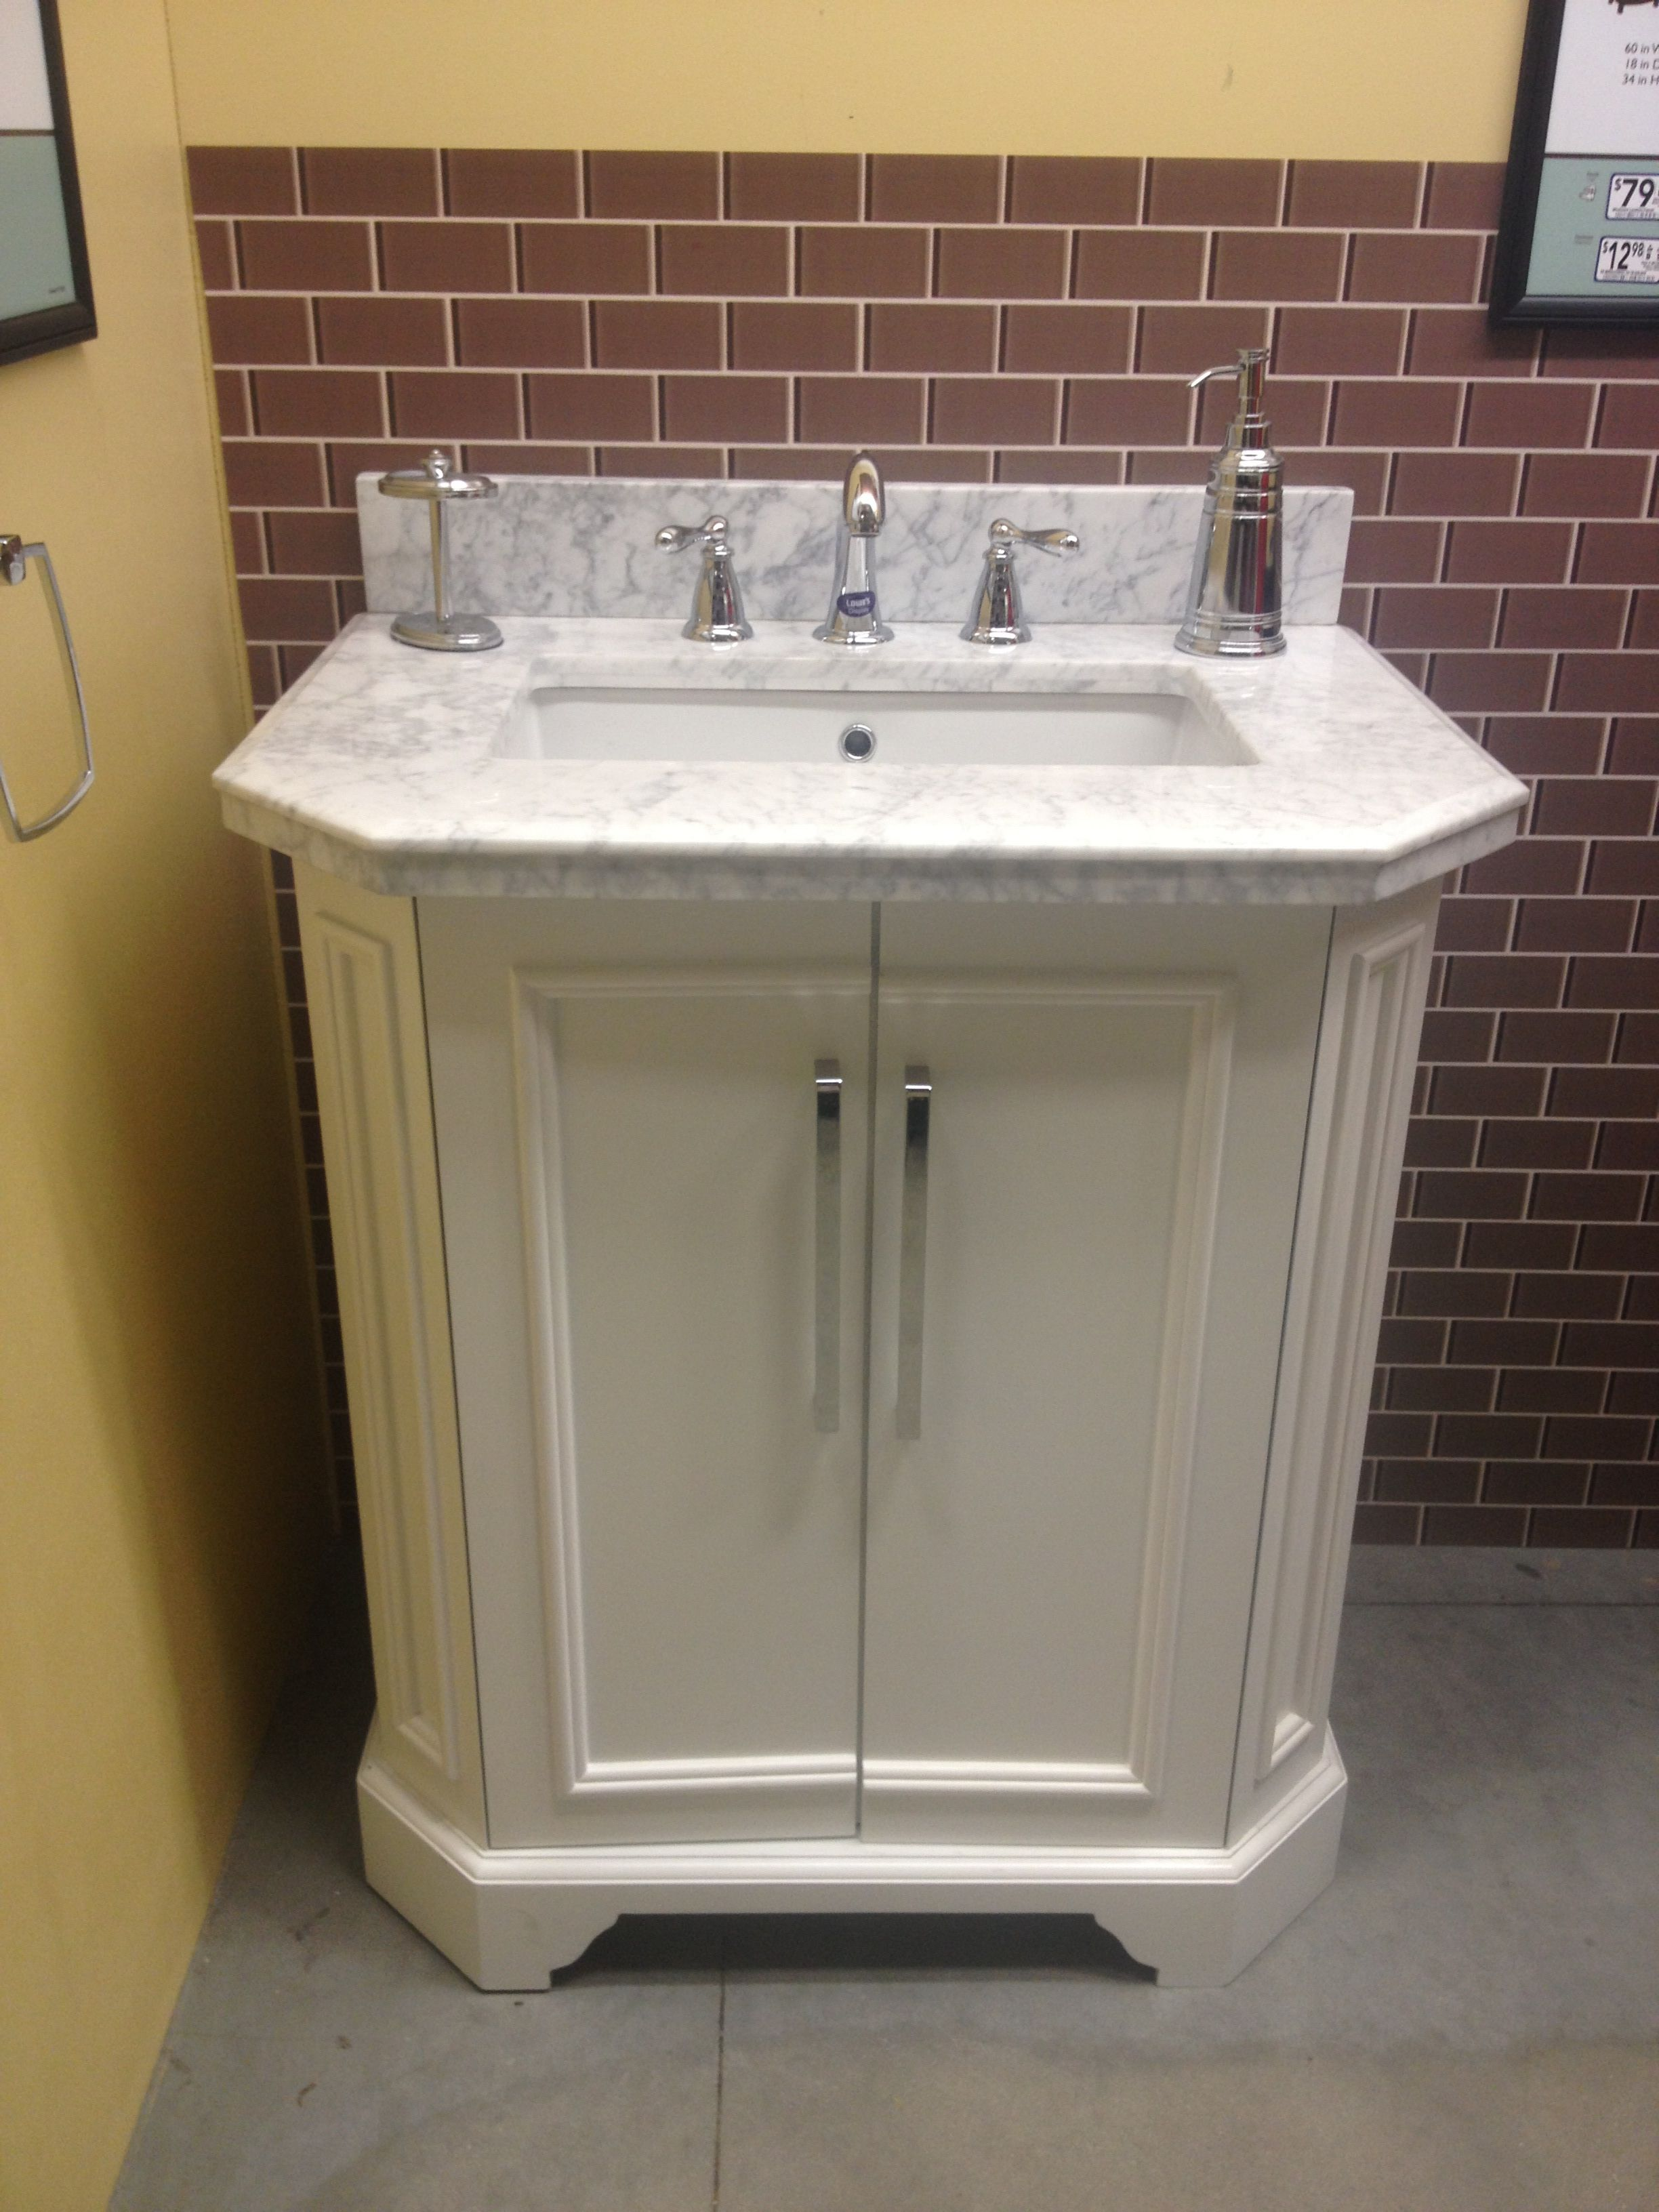 Allen Roth Delancy 31 Vanity Lowes Carrara Marble Top 419 Bathroom Vanity Countertops Bathroom Vanity Vanity